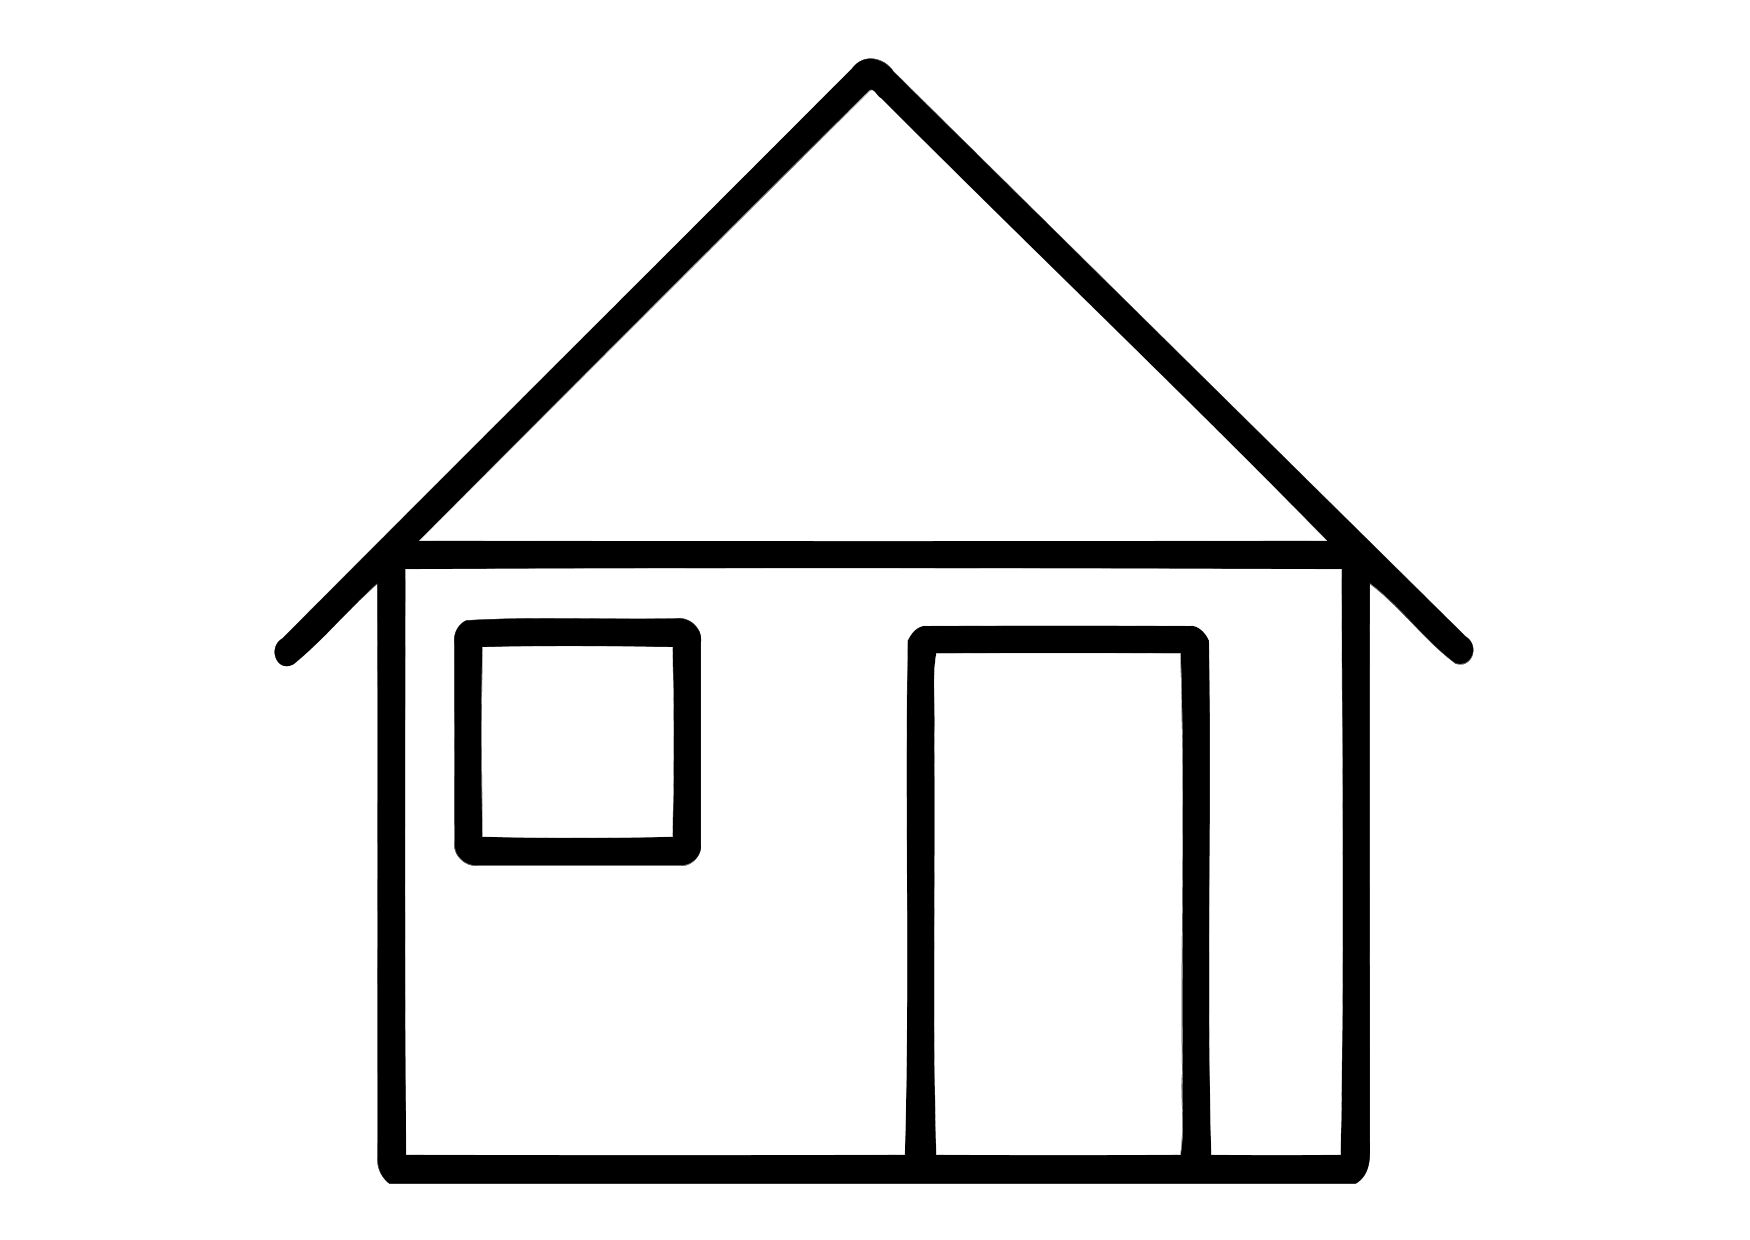 house coloring pictures house coloring pages to download and print for free coloring pictures house